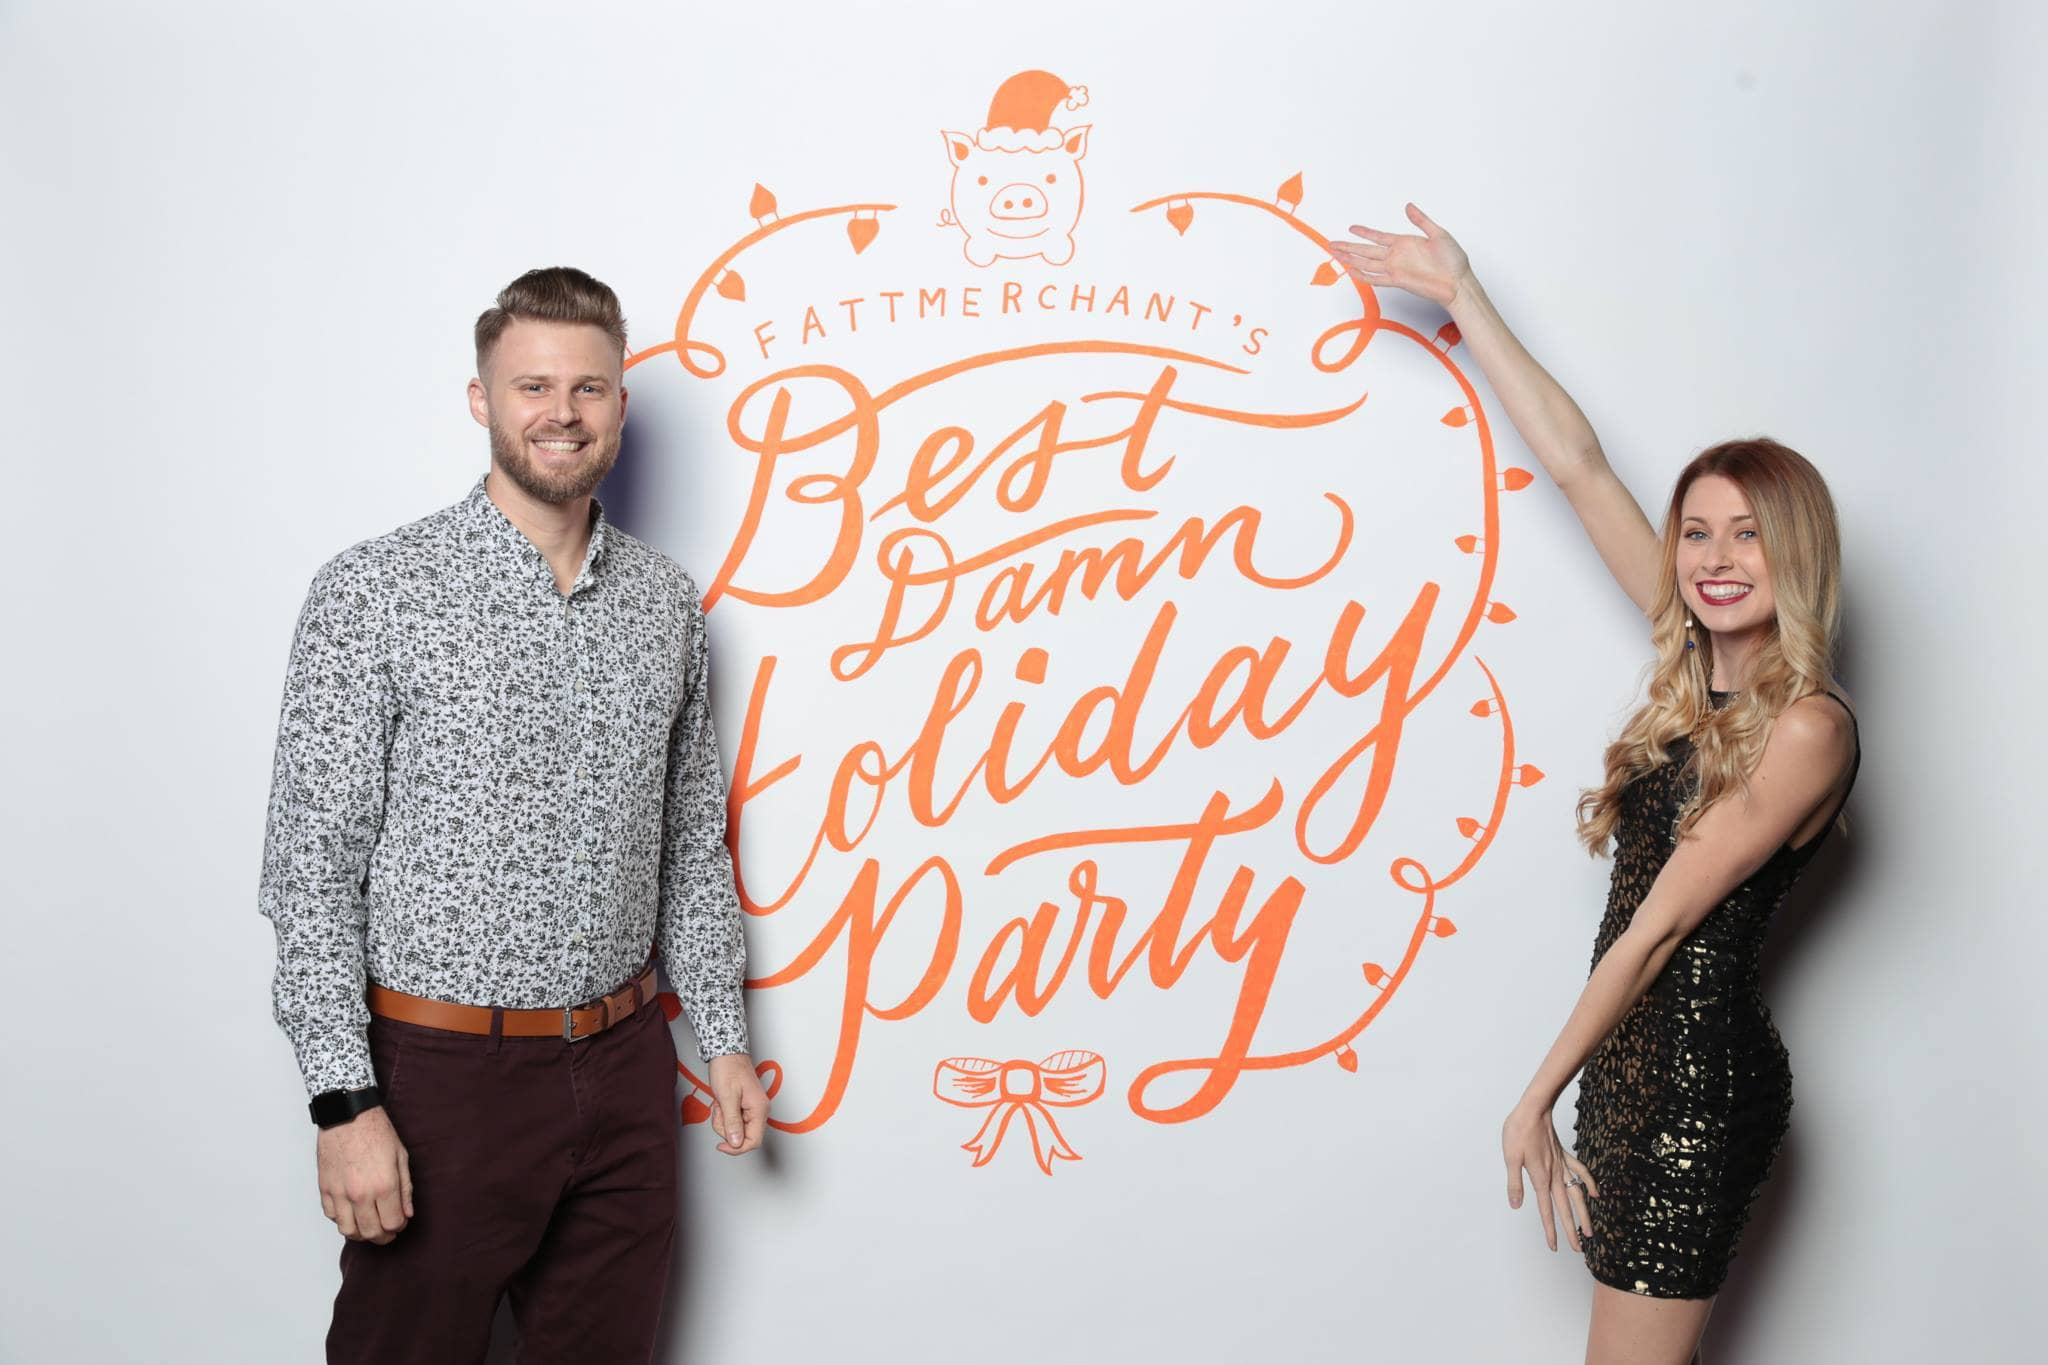 Hand lettered Fattmerchant holiday photo booth backdrop by Hillery Powers